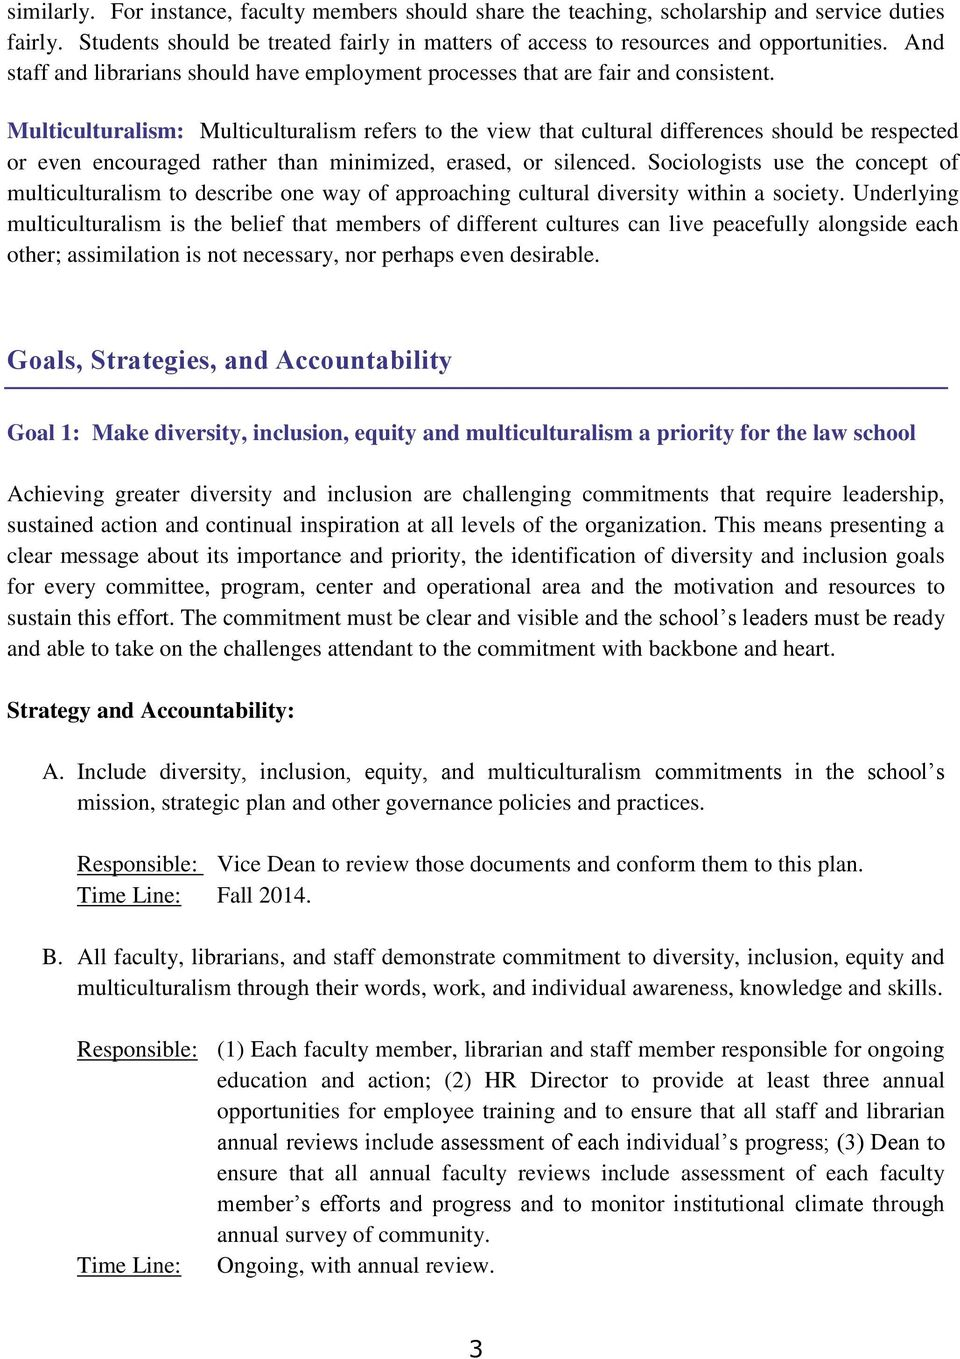 essay on diversity consideration for ethics and diversity proposal essay example paper add to wishlist delete from wishlist